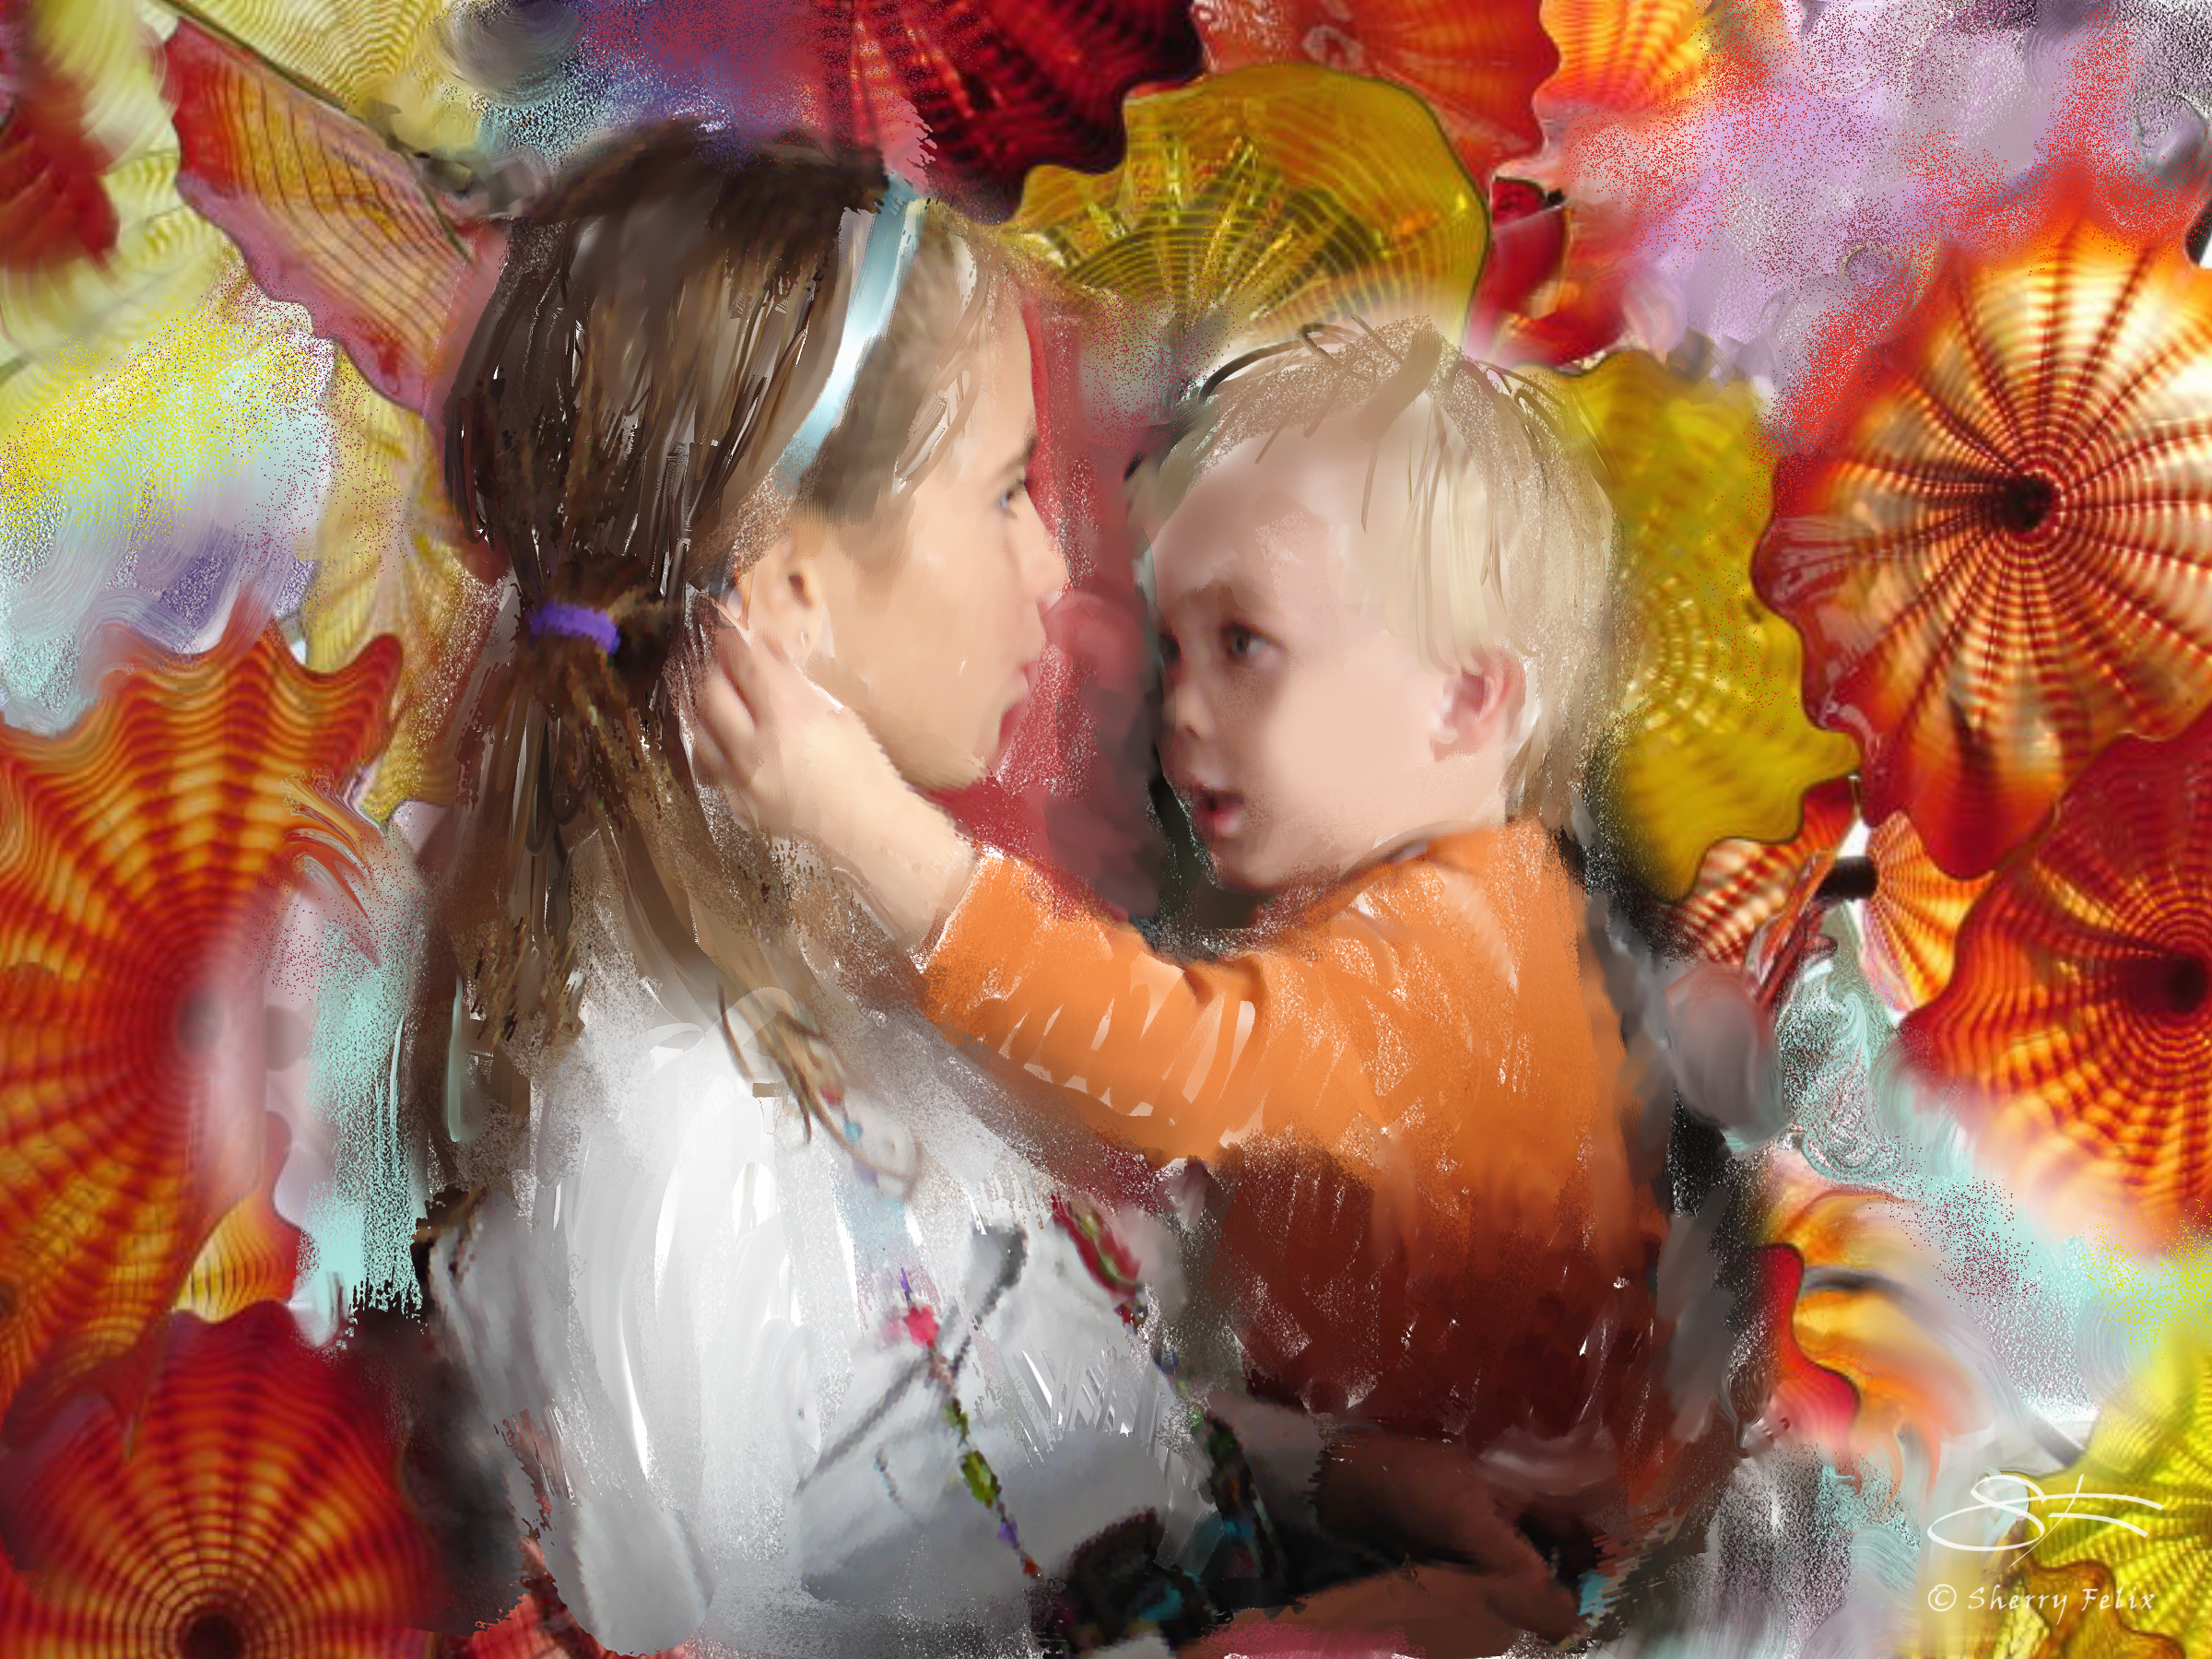 Niece and Nephew with Chihuly Glass 4/27/2008